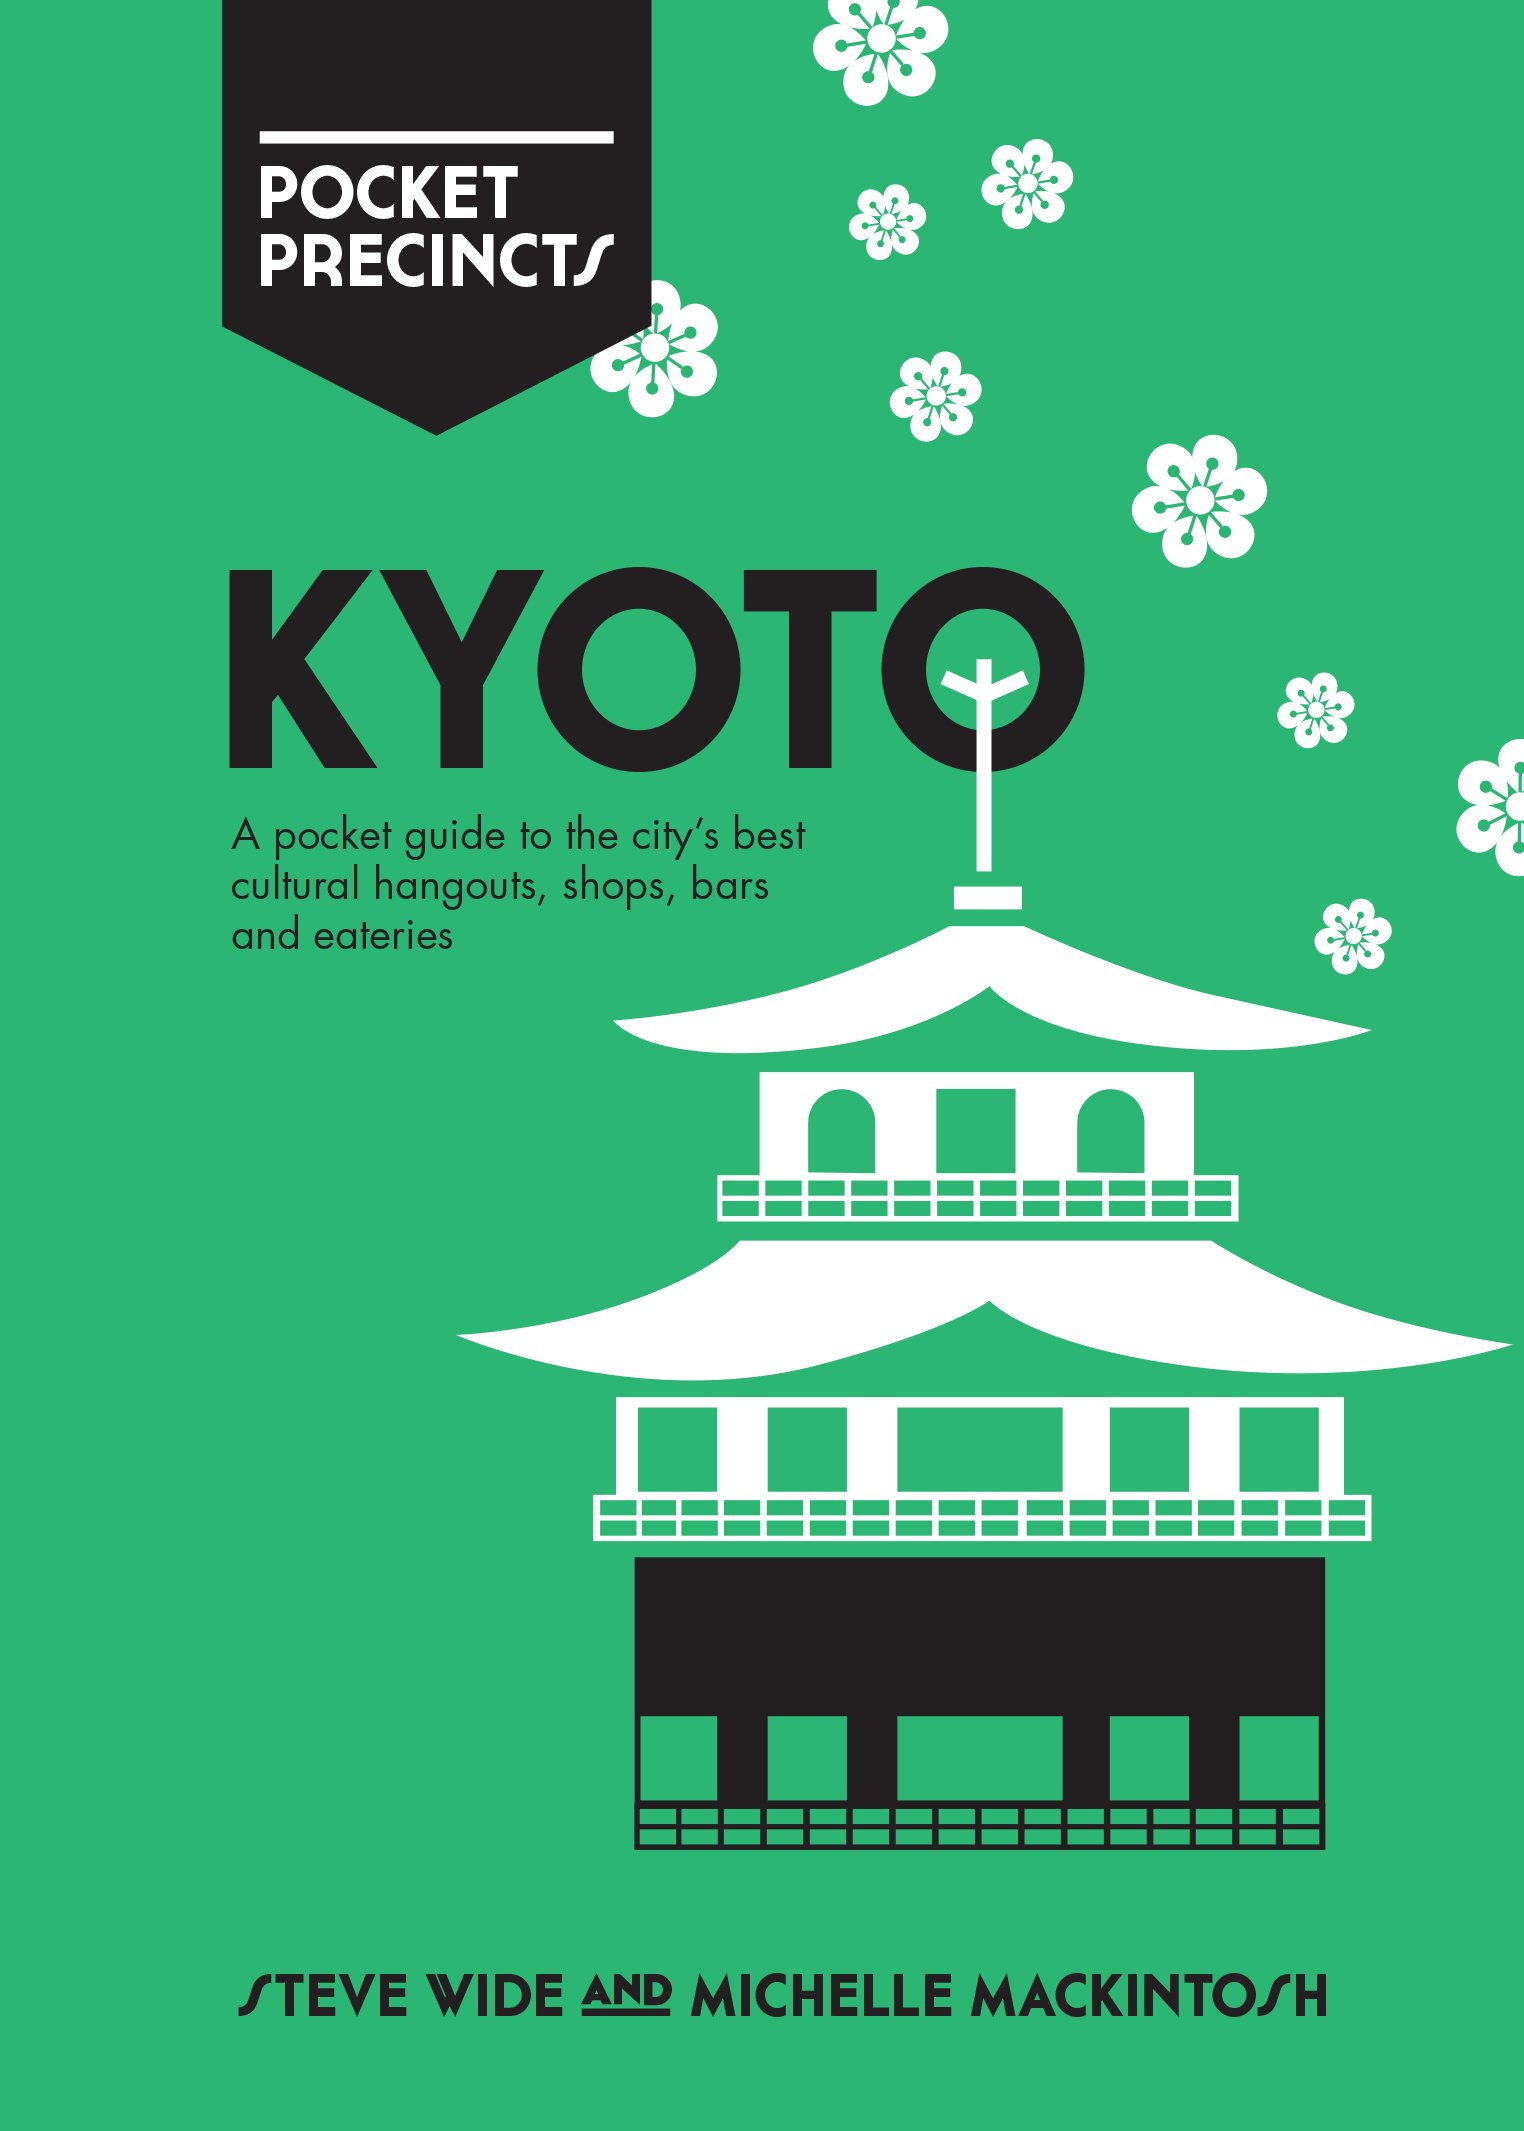 Kyoto Pocket Precincts: A Pocket Guide to the City's Best Cultural Hangouts, Shops, Bars and Eateries